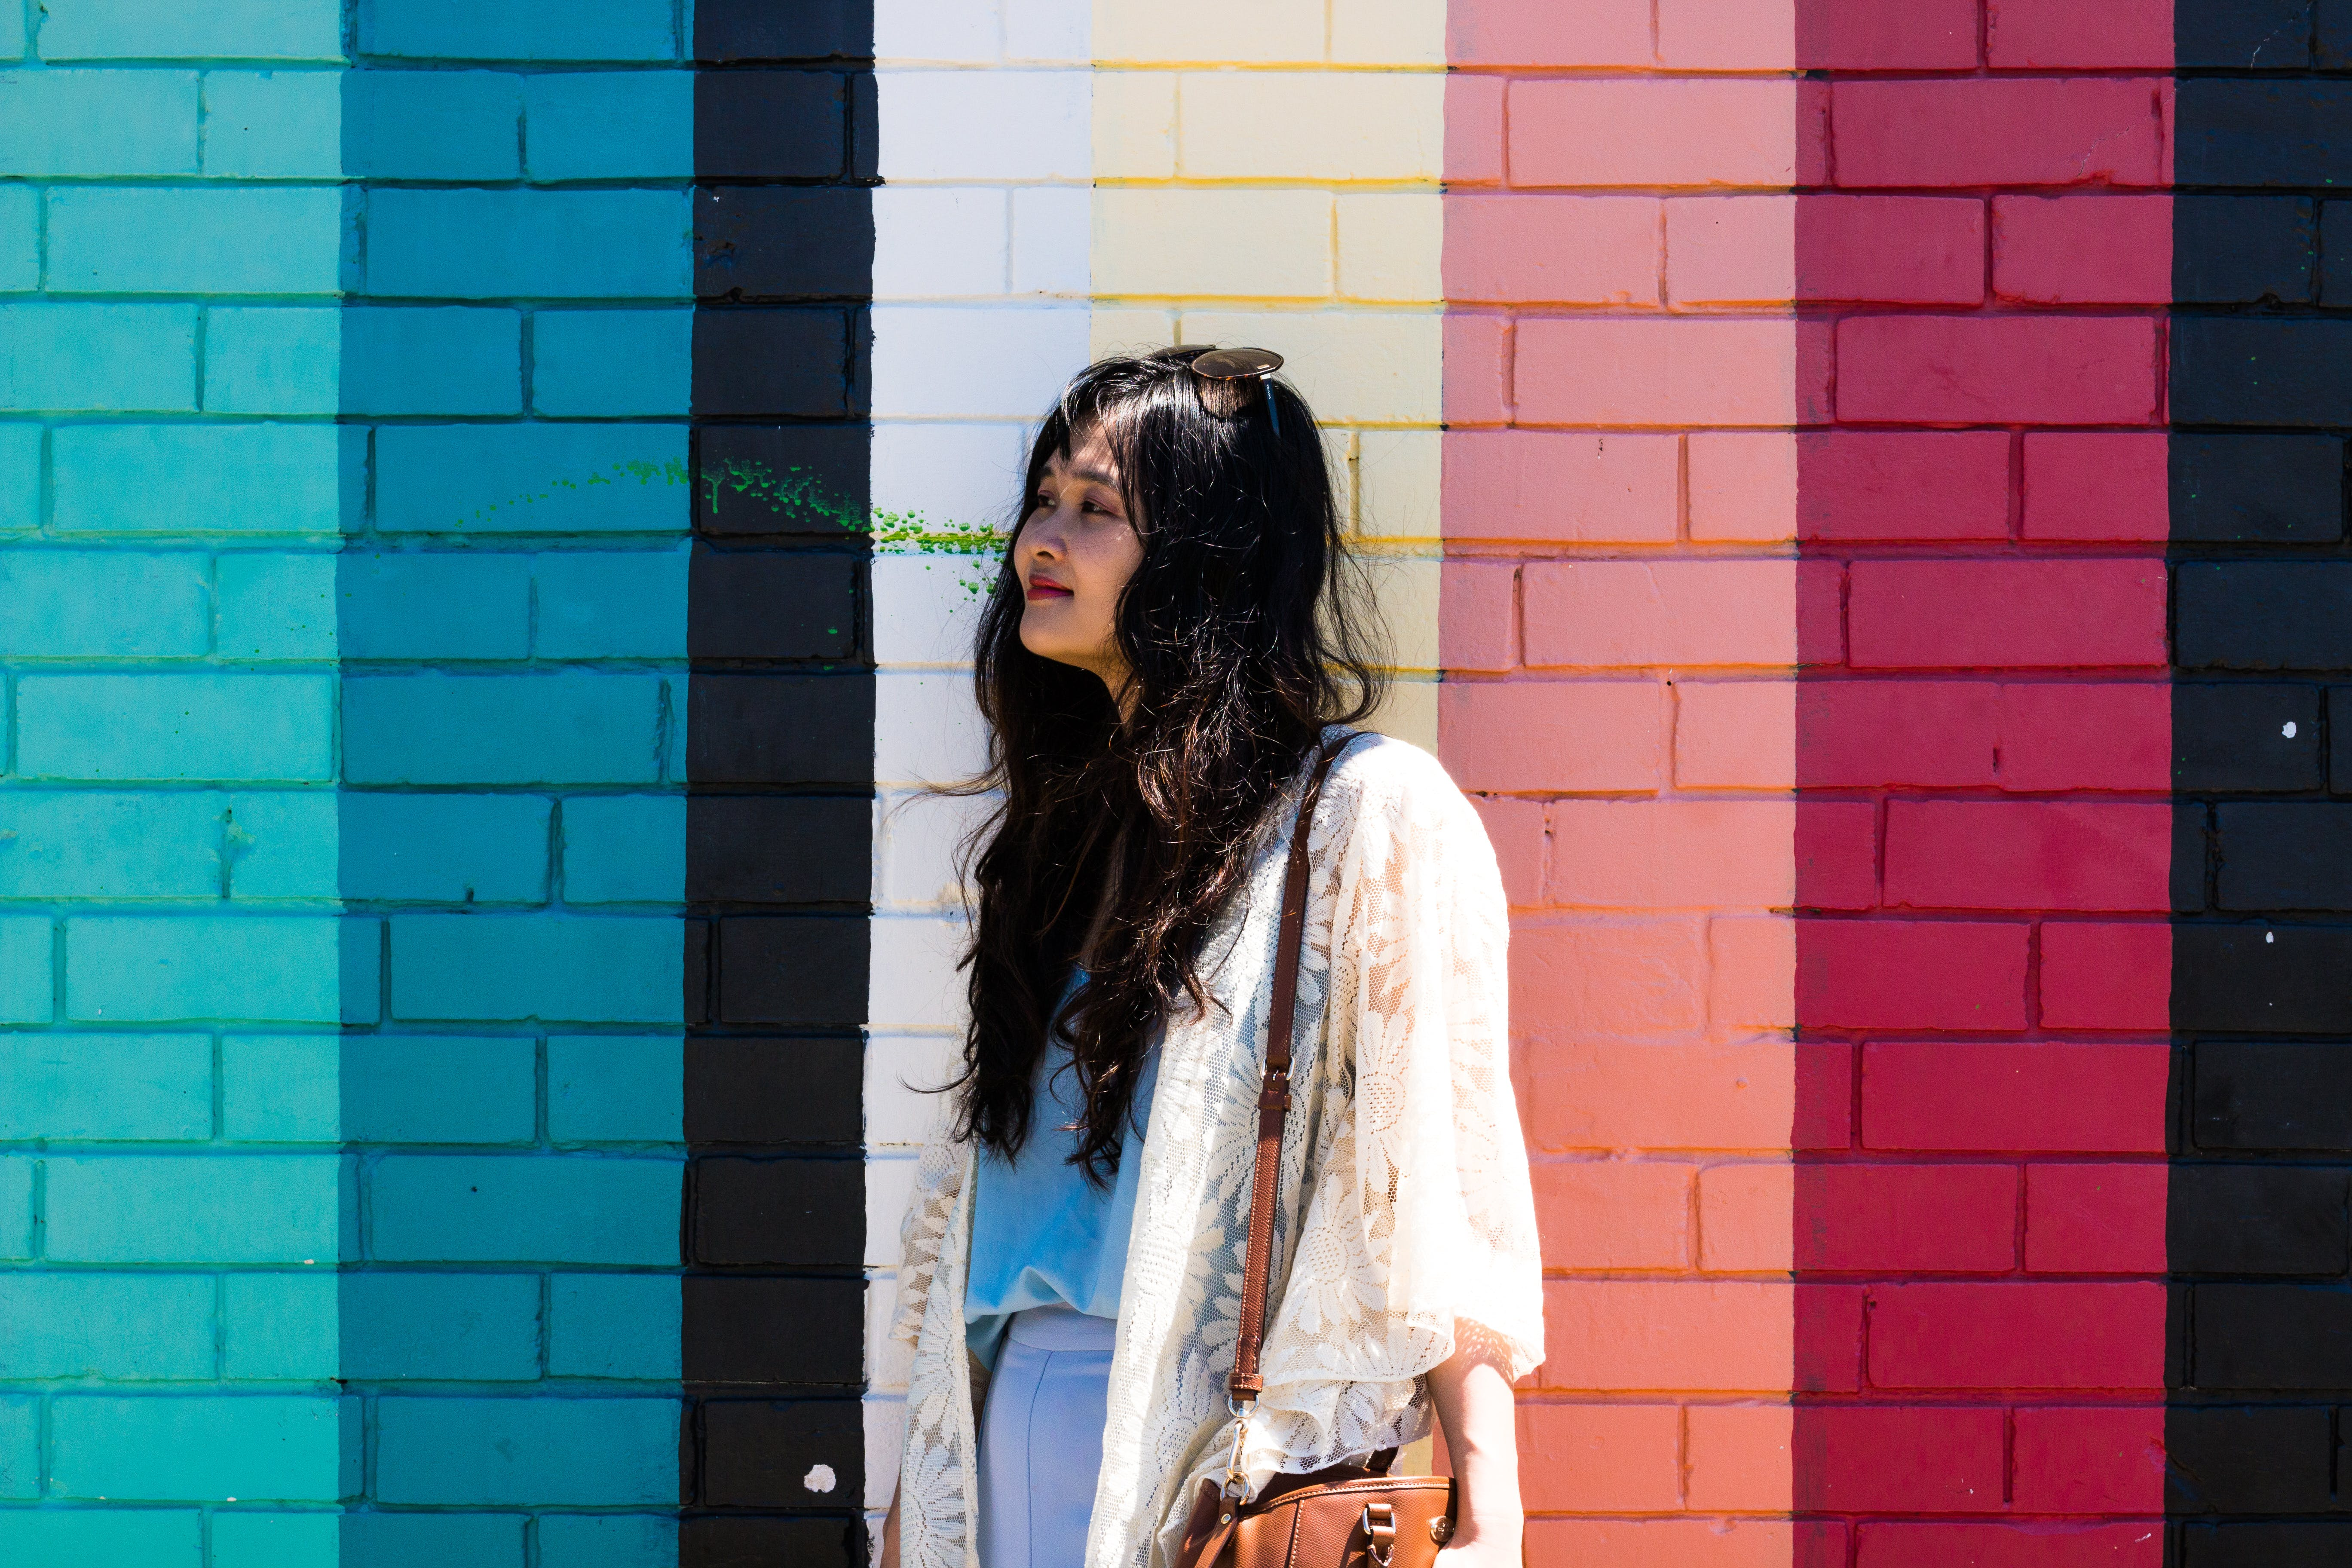 Woman Wearing White Cardigan Standing Beside Multicolored Wall